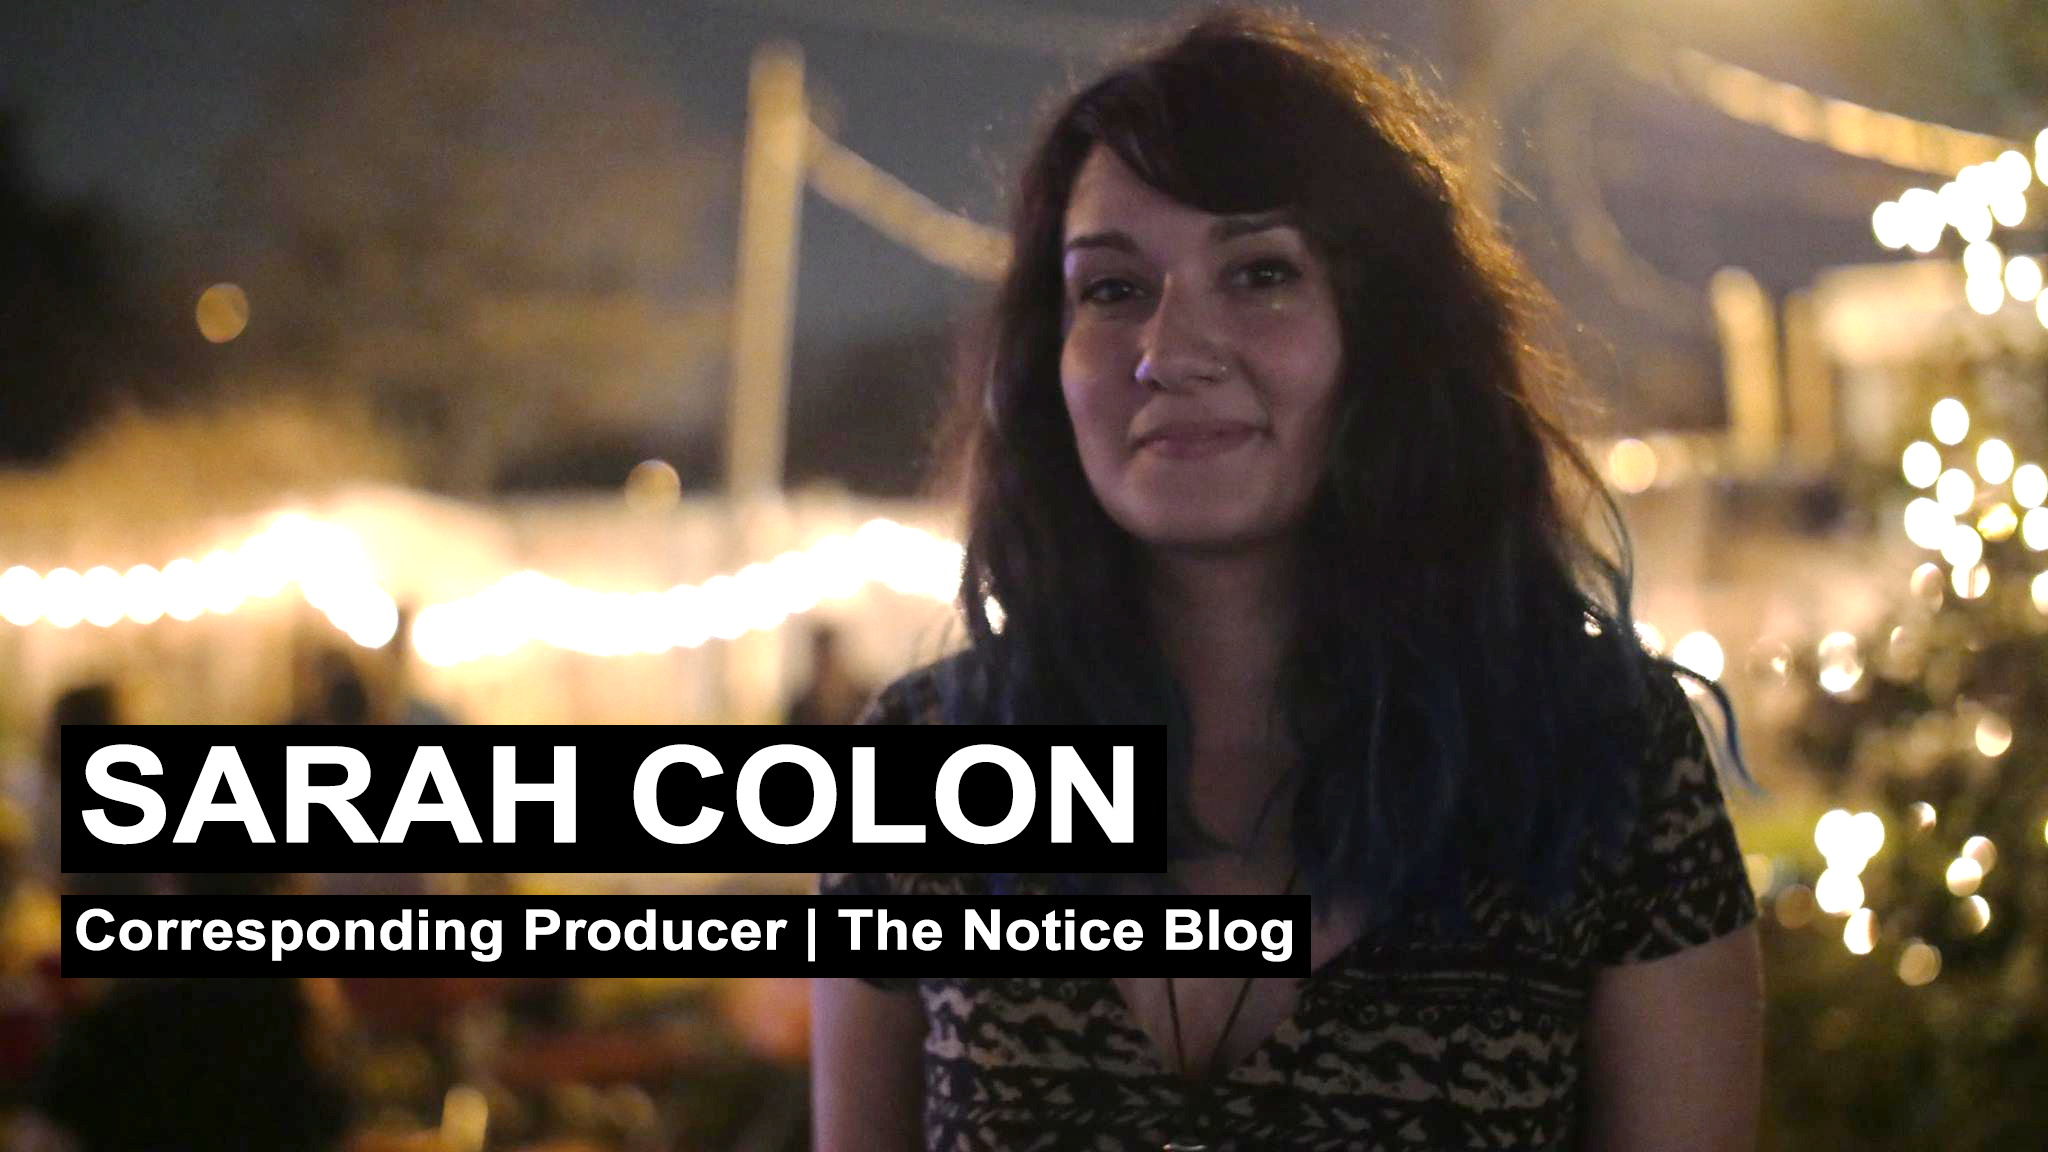 Sarah Colón is an independent videogr  ap  her who has been traveling the country covering stories ranging from Occupy, ALEC, police brutality, immigration and even going into psychedelics studies. Community, agorism and solutions are major factors in her passion to help the world.